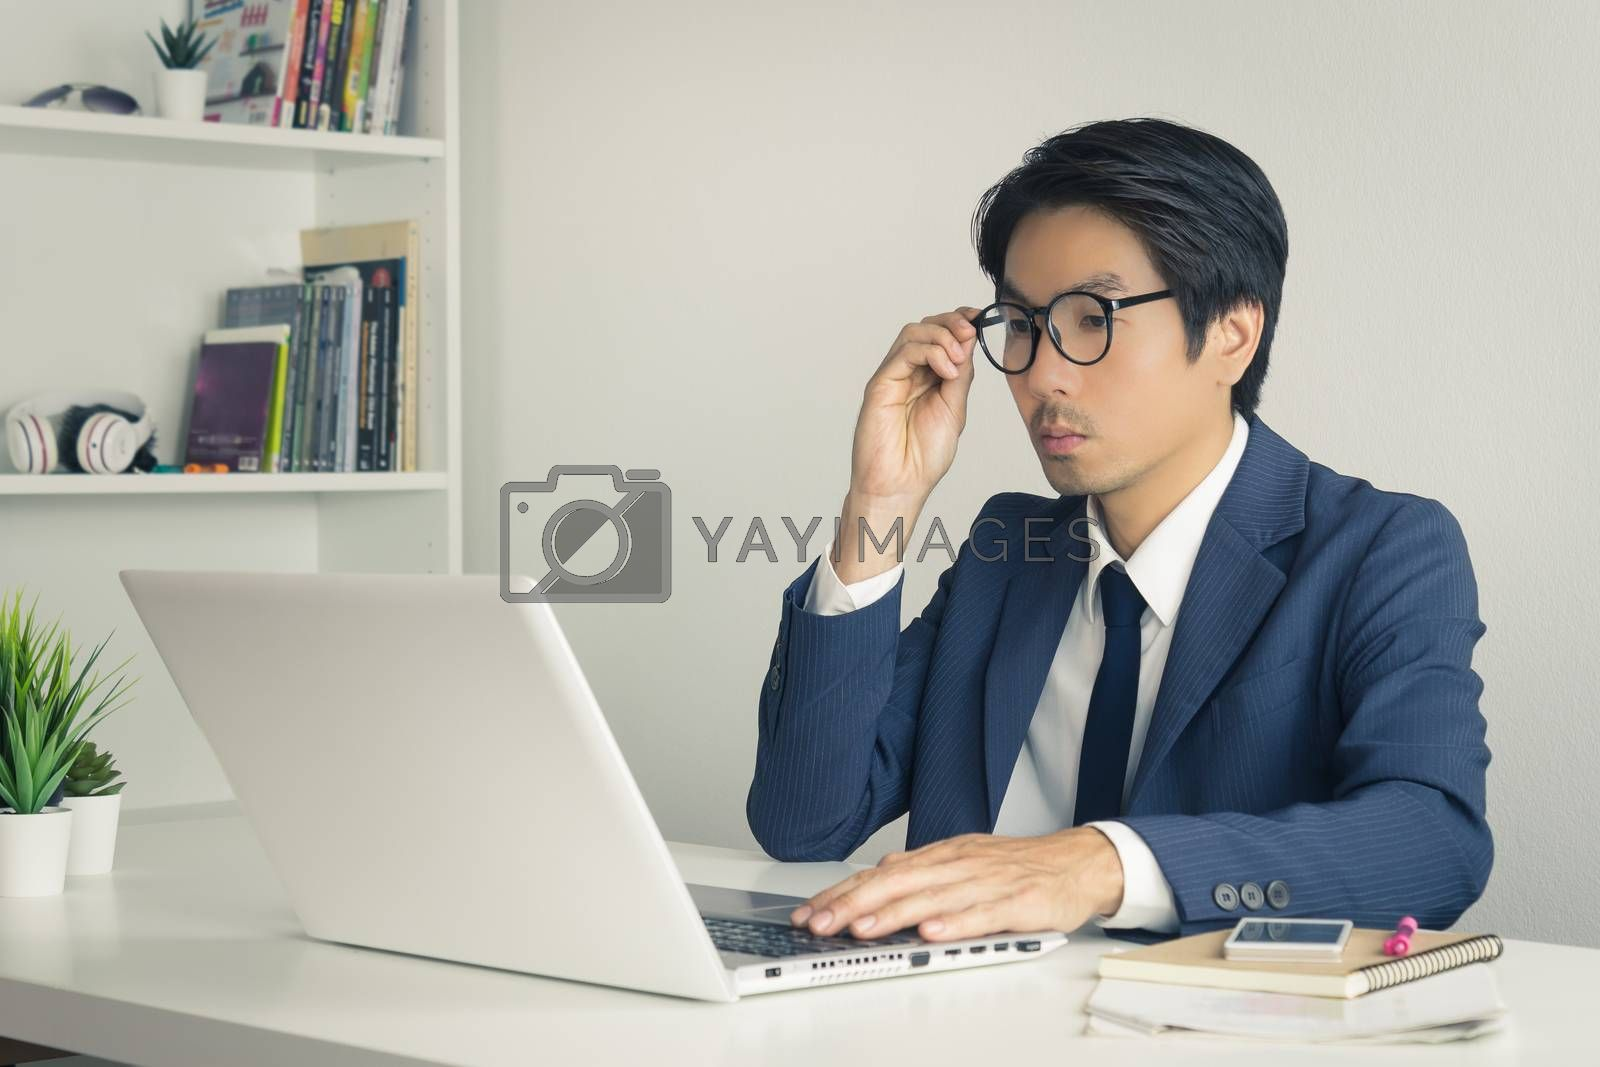 Asian Financial Advisor or Asian Consulting Businessman in Suit Consider and Analyze Financial Data. Asian Financial Advisor or Asian Consulting Businessman serious working in office